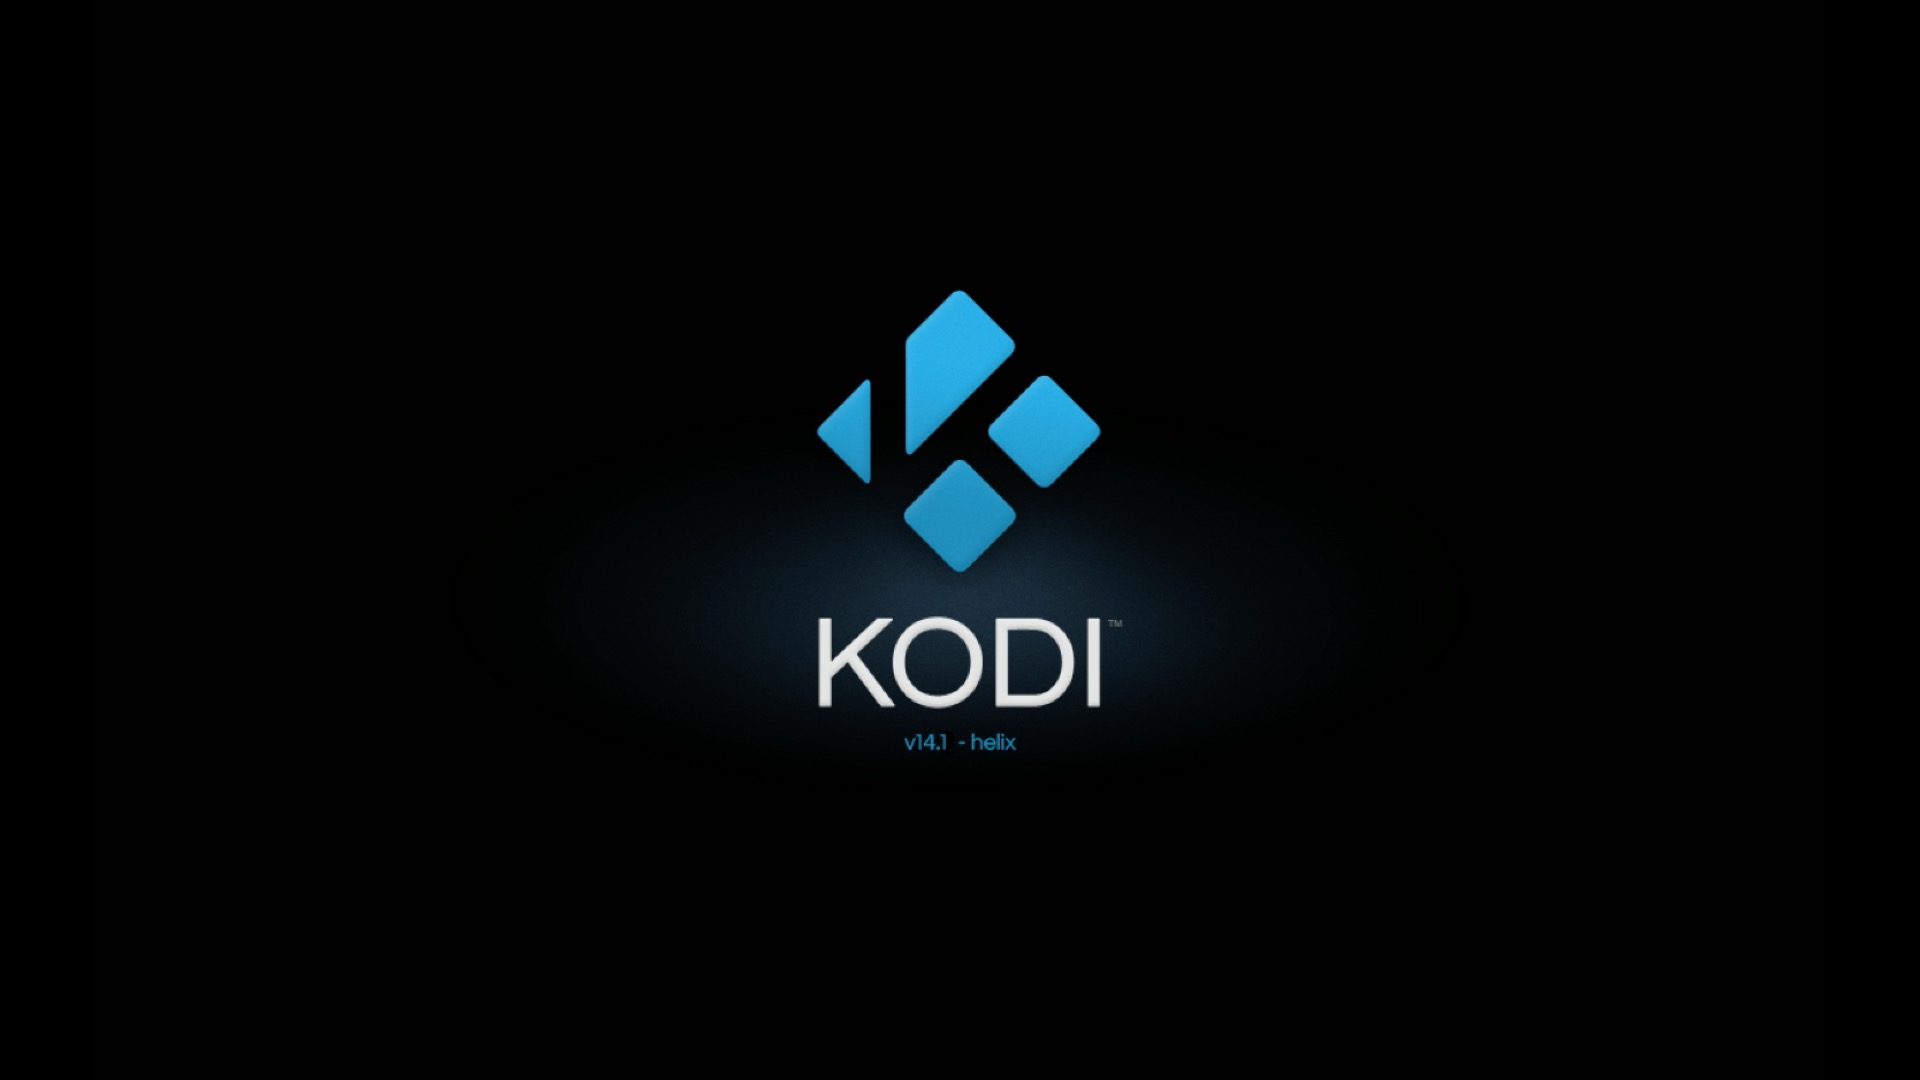 VIDEO – How-To Install 1Channel Add-On in KODI, (XMBC)